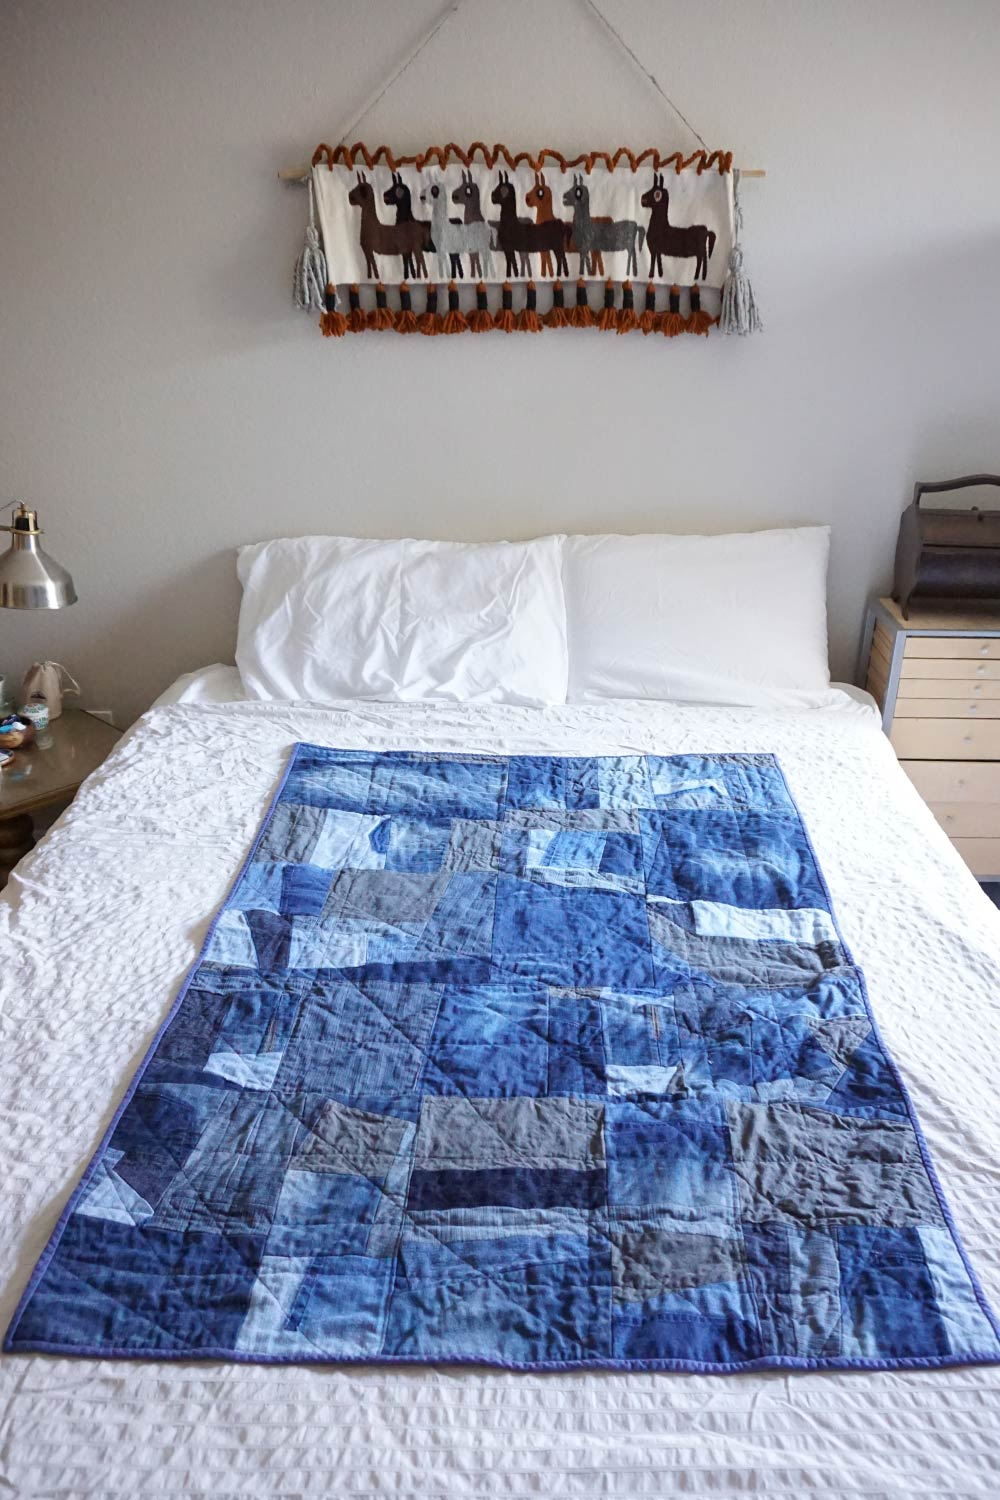 Diy Improvisational Denim Quilt Sew Diy